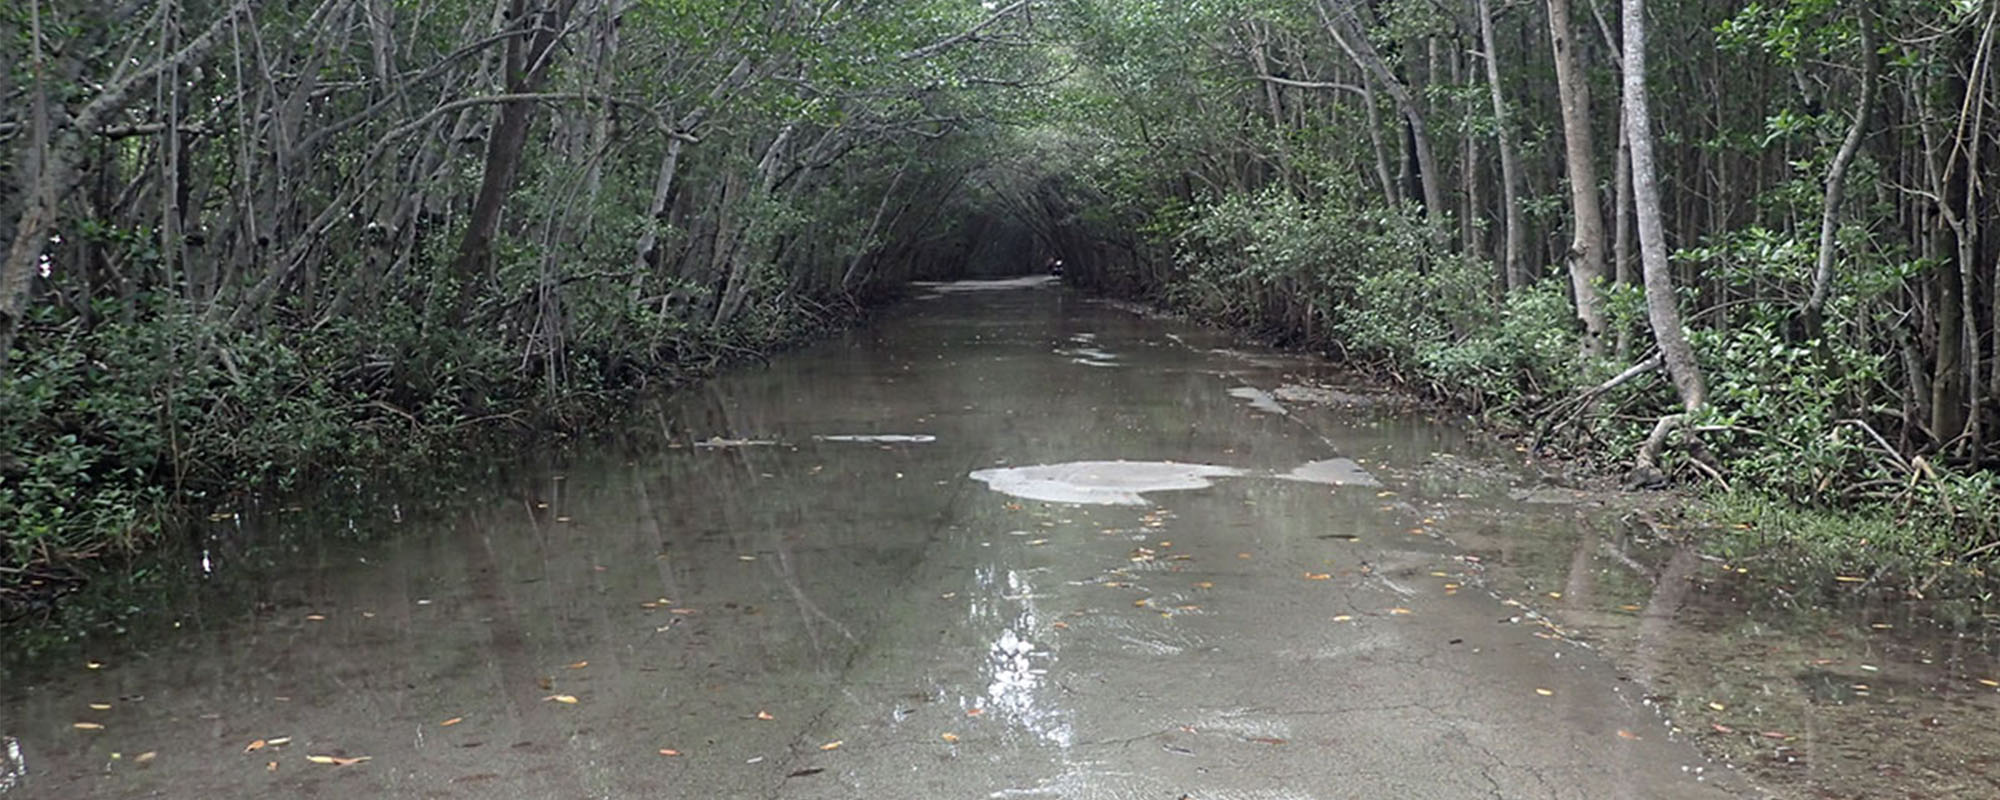 Matheson Hammock Park Sea Level Rise Flood Mitigation Roadmap and Plan